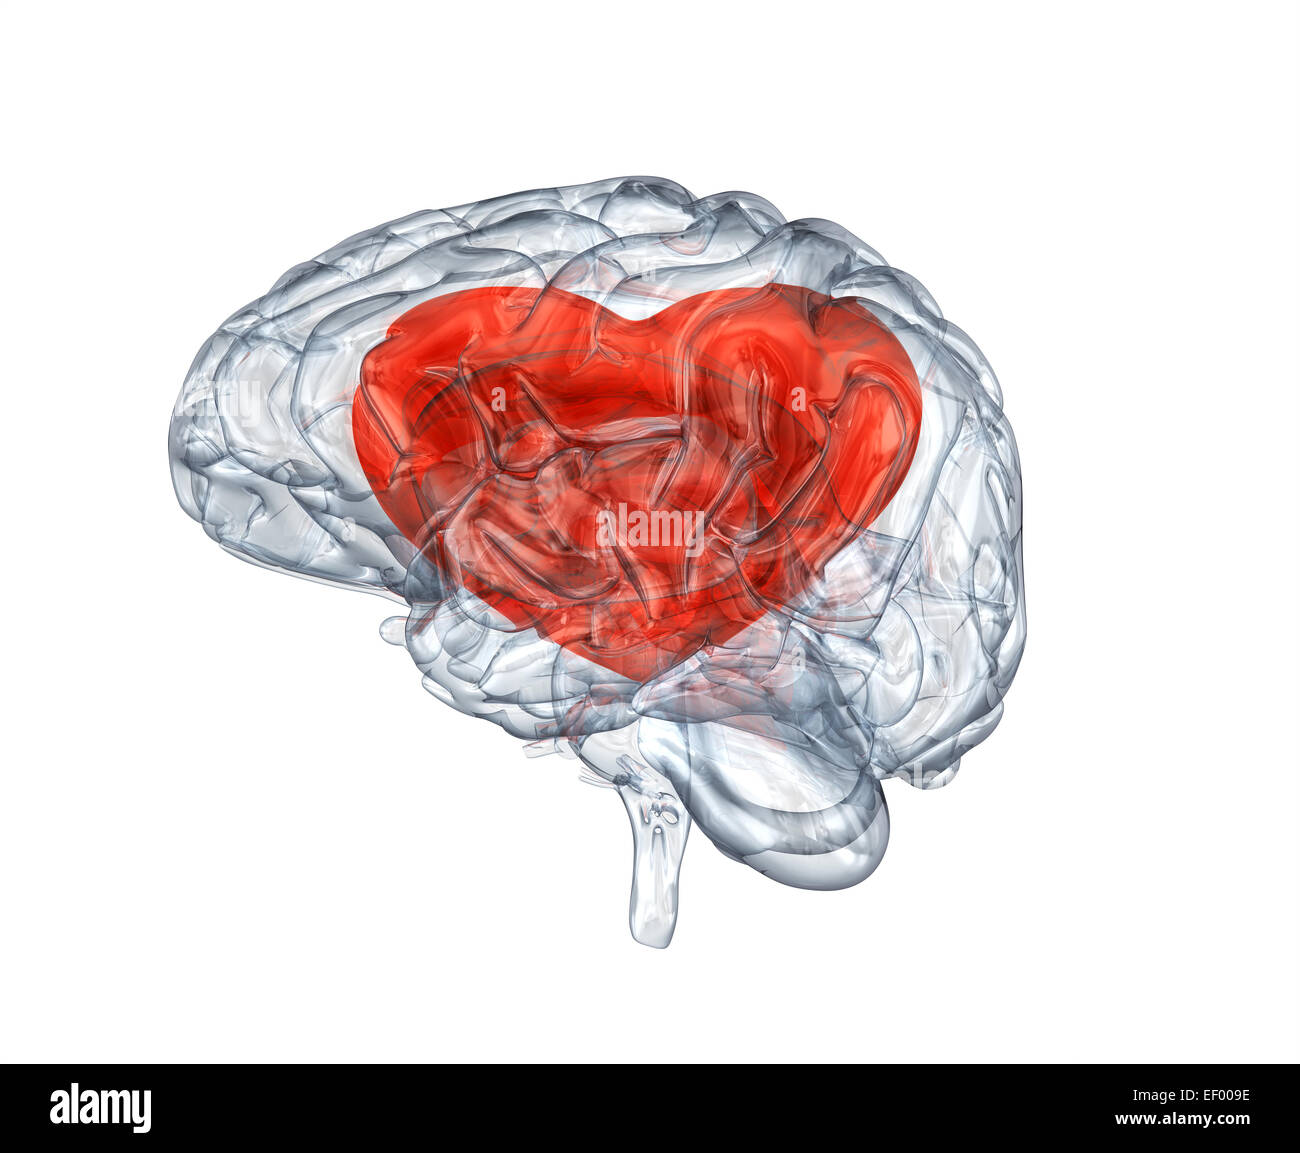 Glass human brain with heart within. Clipping path included - Stock Image